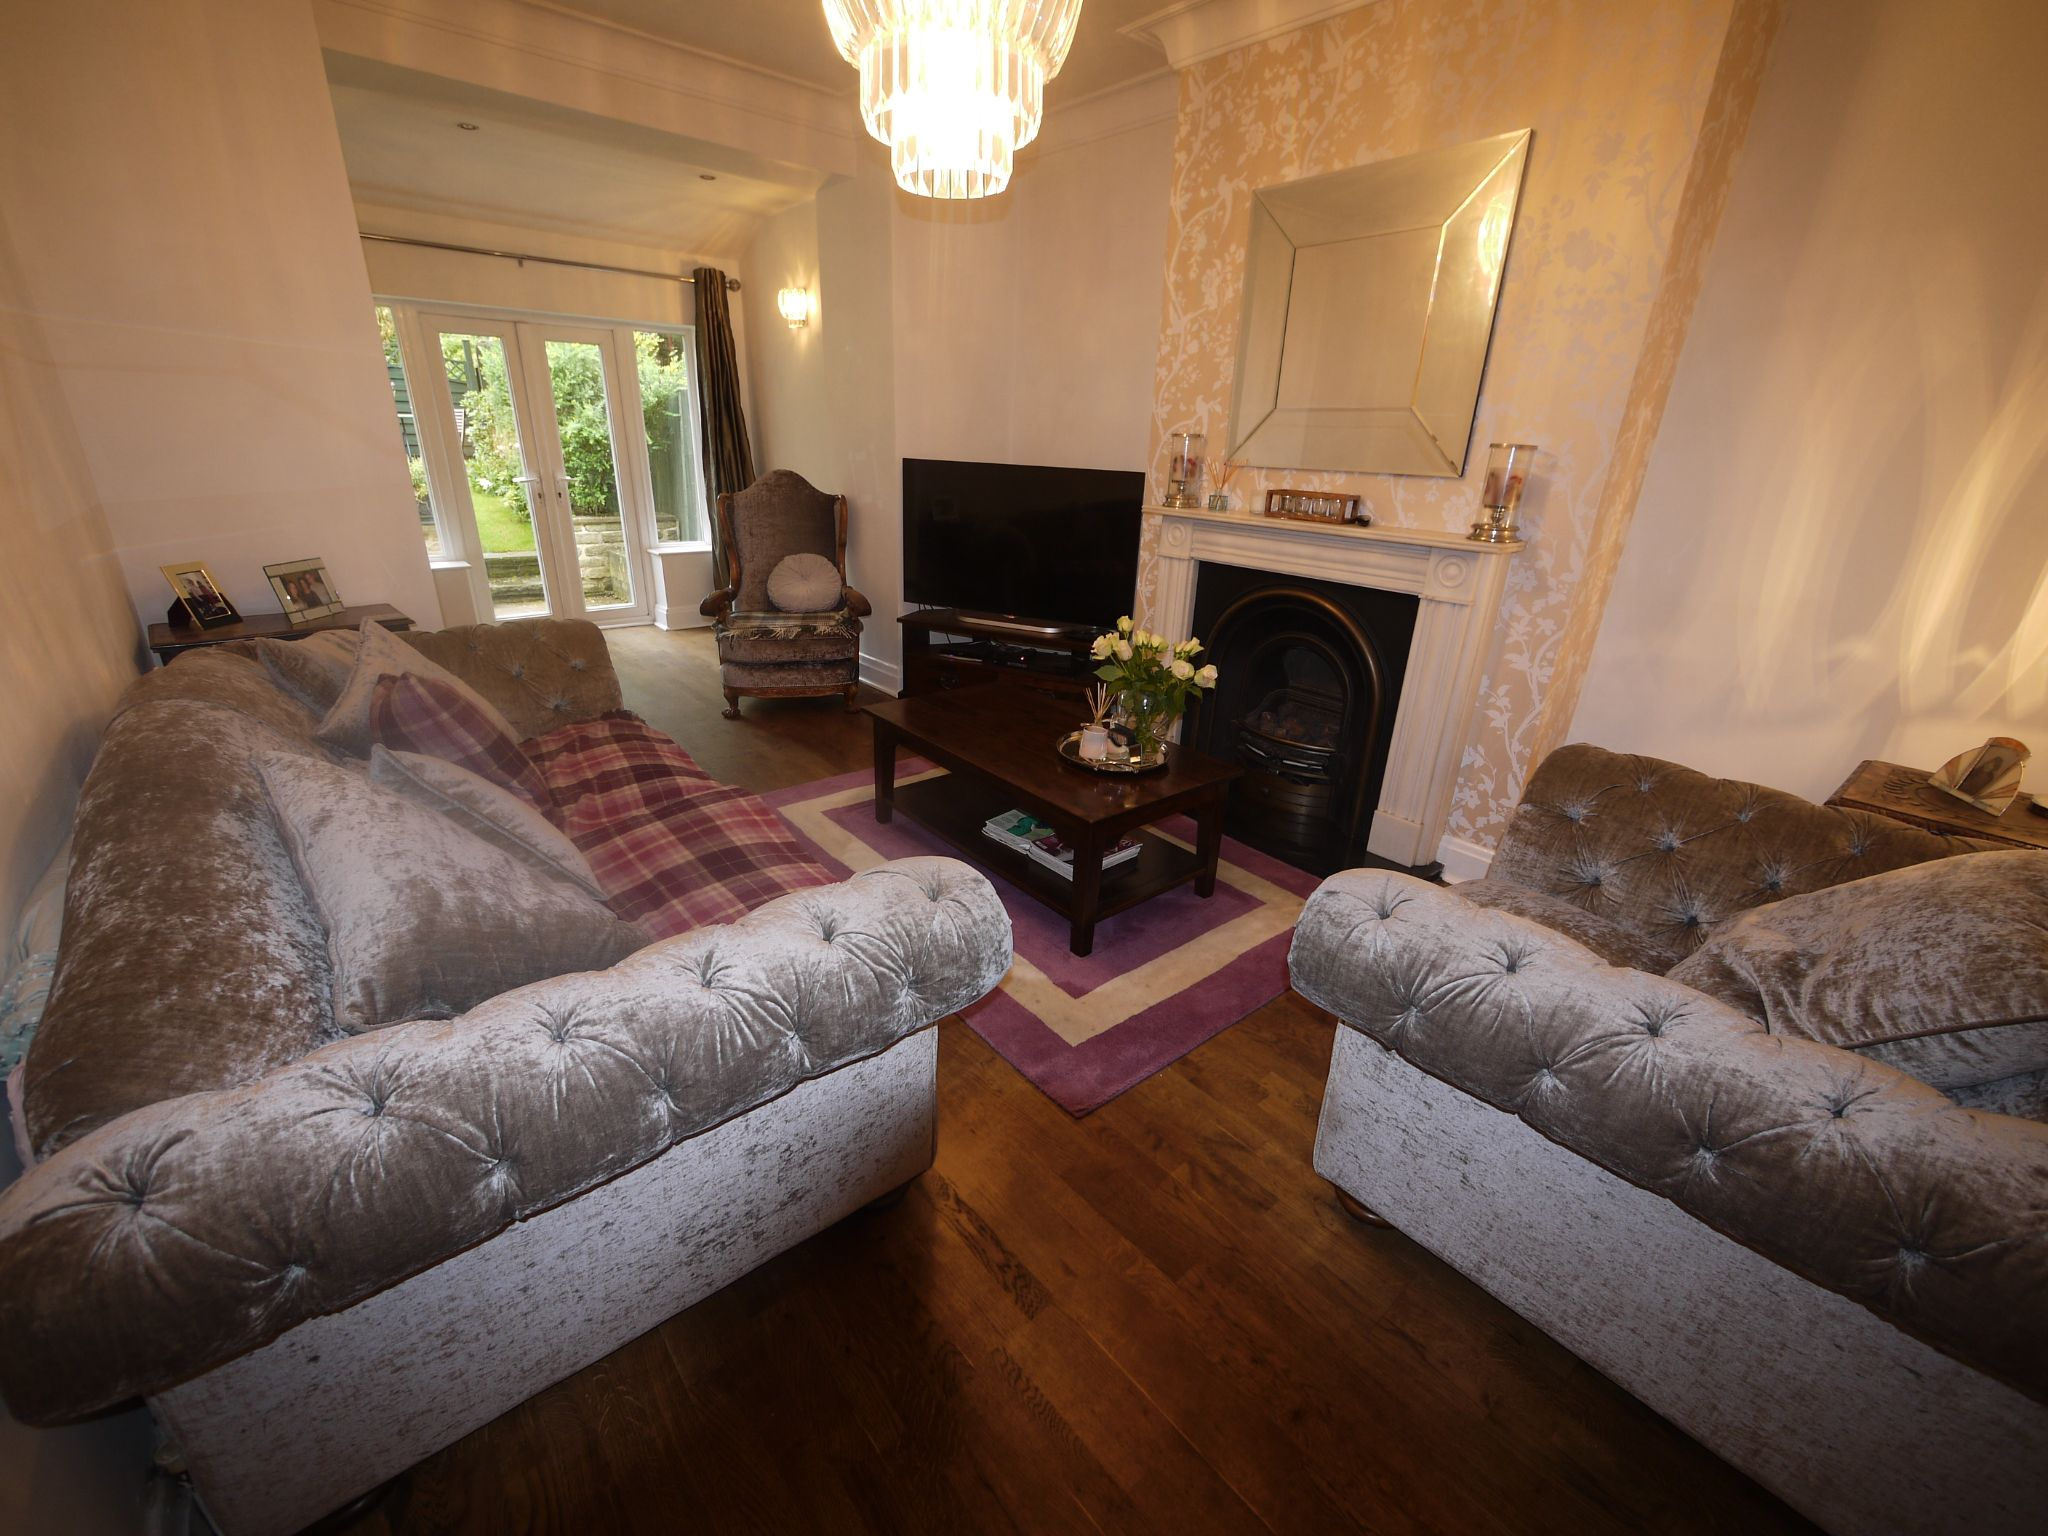 4 bedroom semi-detached house SSTC in Halifax - Lounge 1.